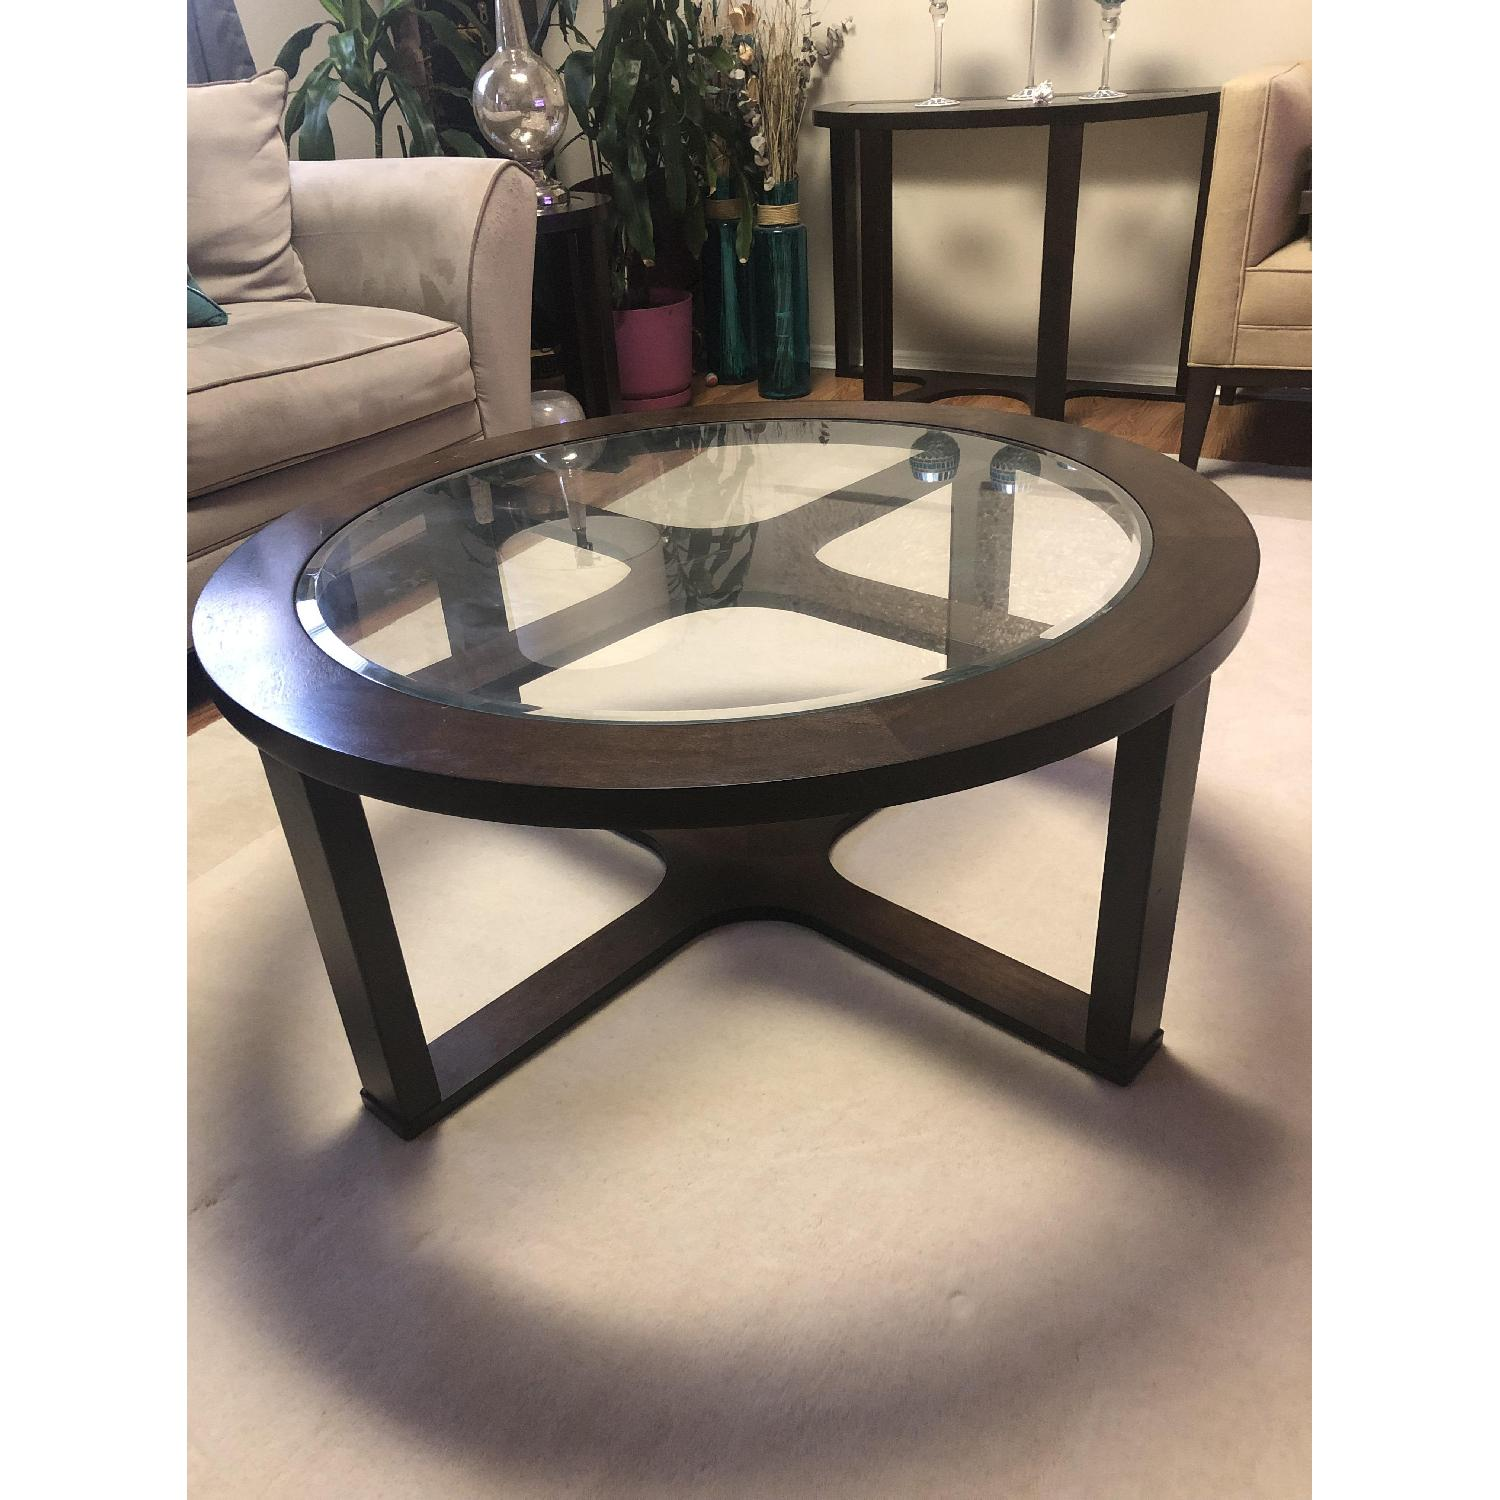 Round Glass Top Coffee Table w/ 4 Ottomans - image-5